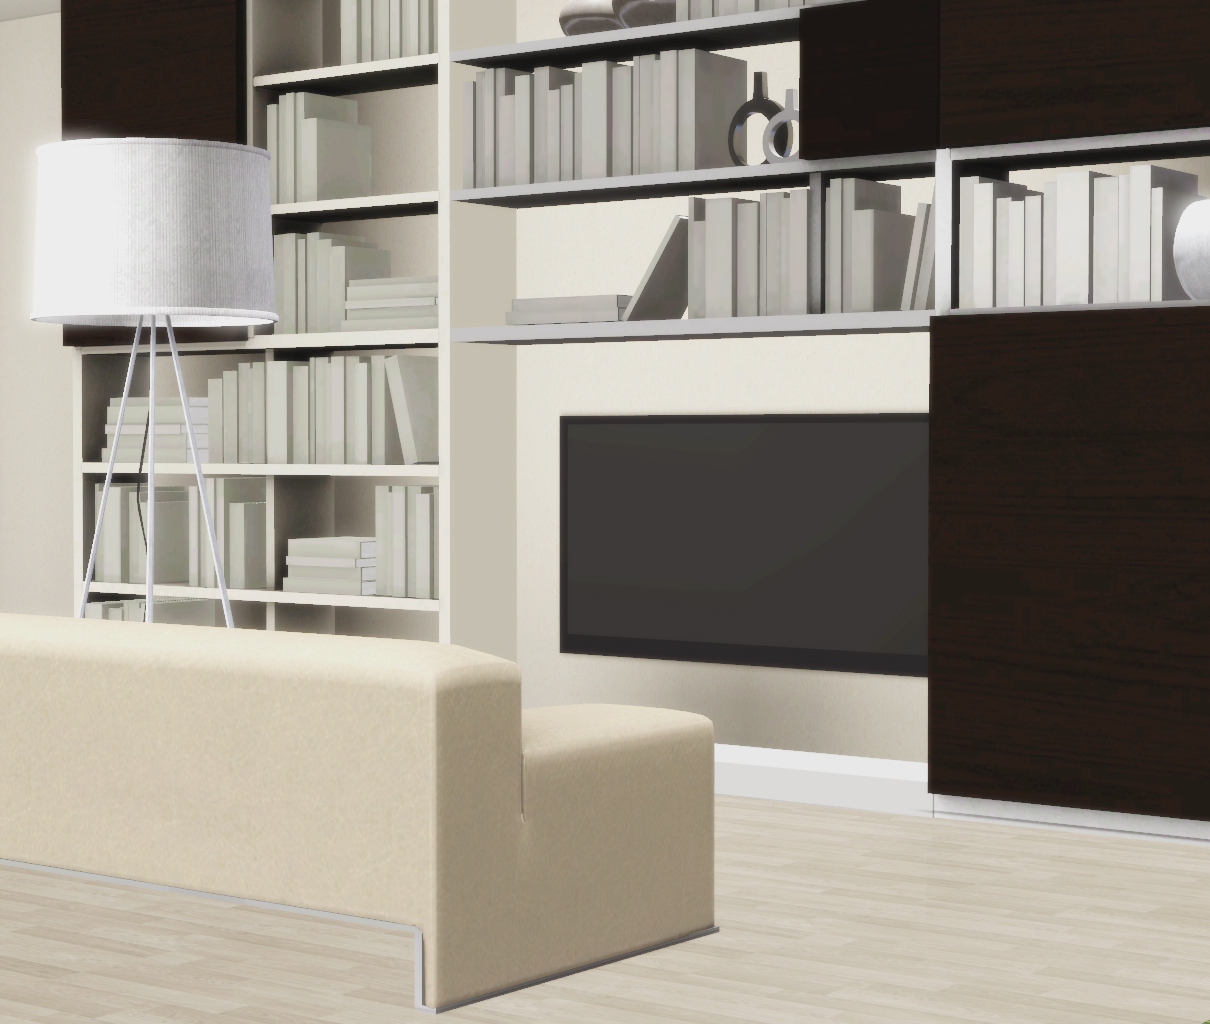 Very Impressive portraiture of My Sims 3 Blog: Bookshelves & Sofa Set by Nicky with #766B55 color and 1210x1024 pixels